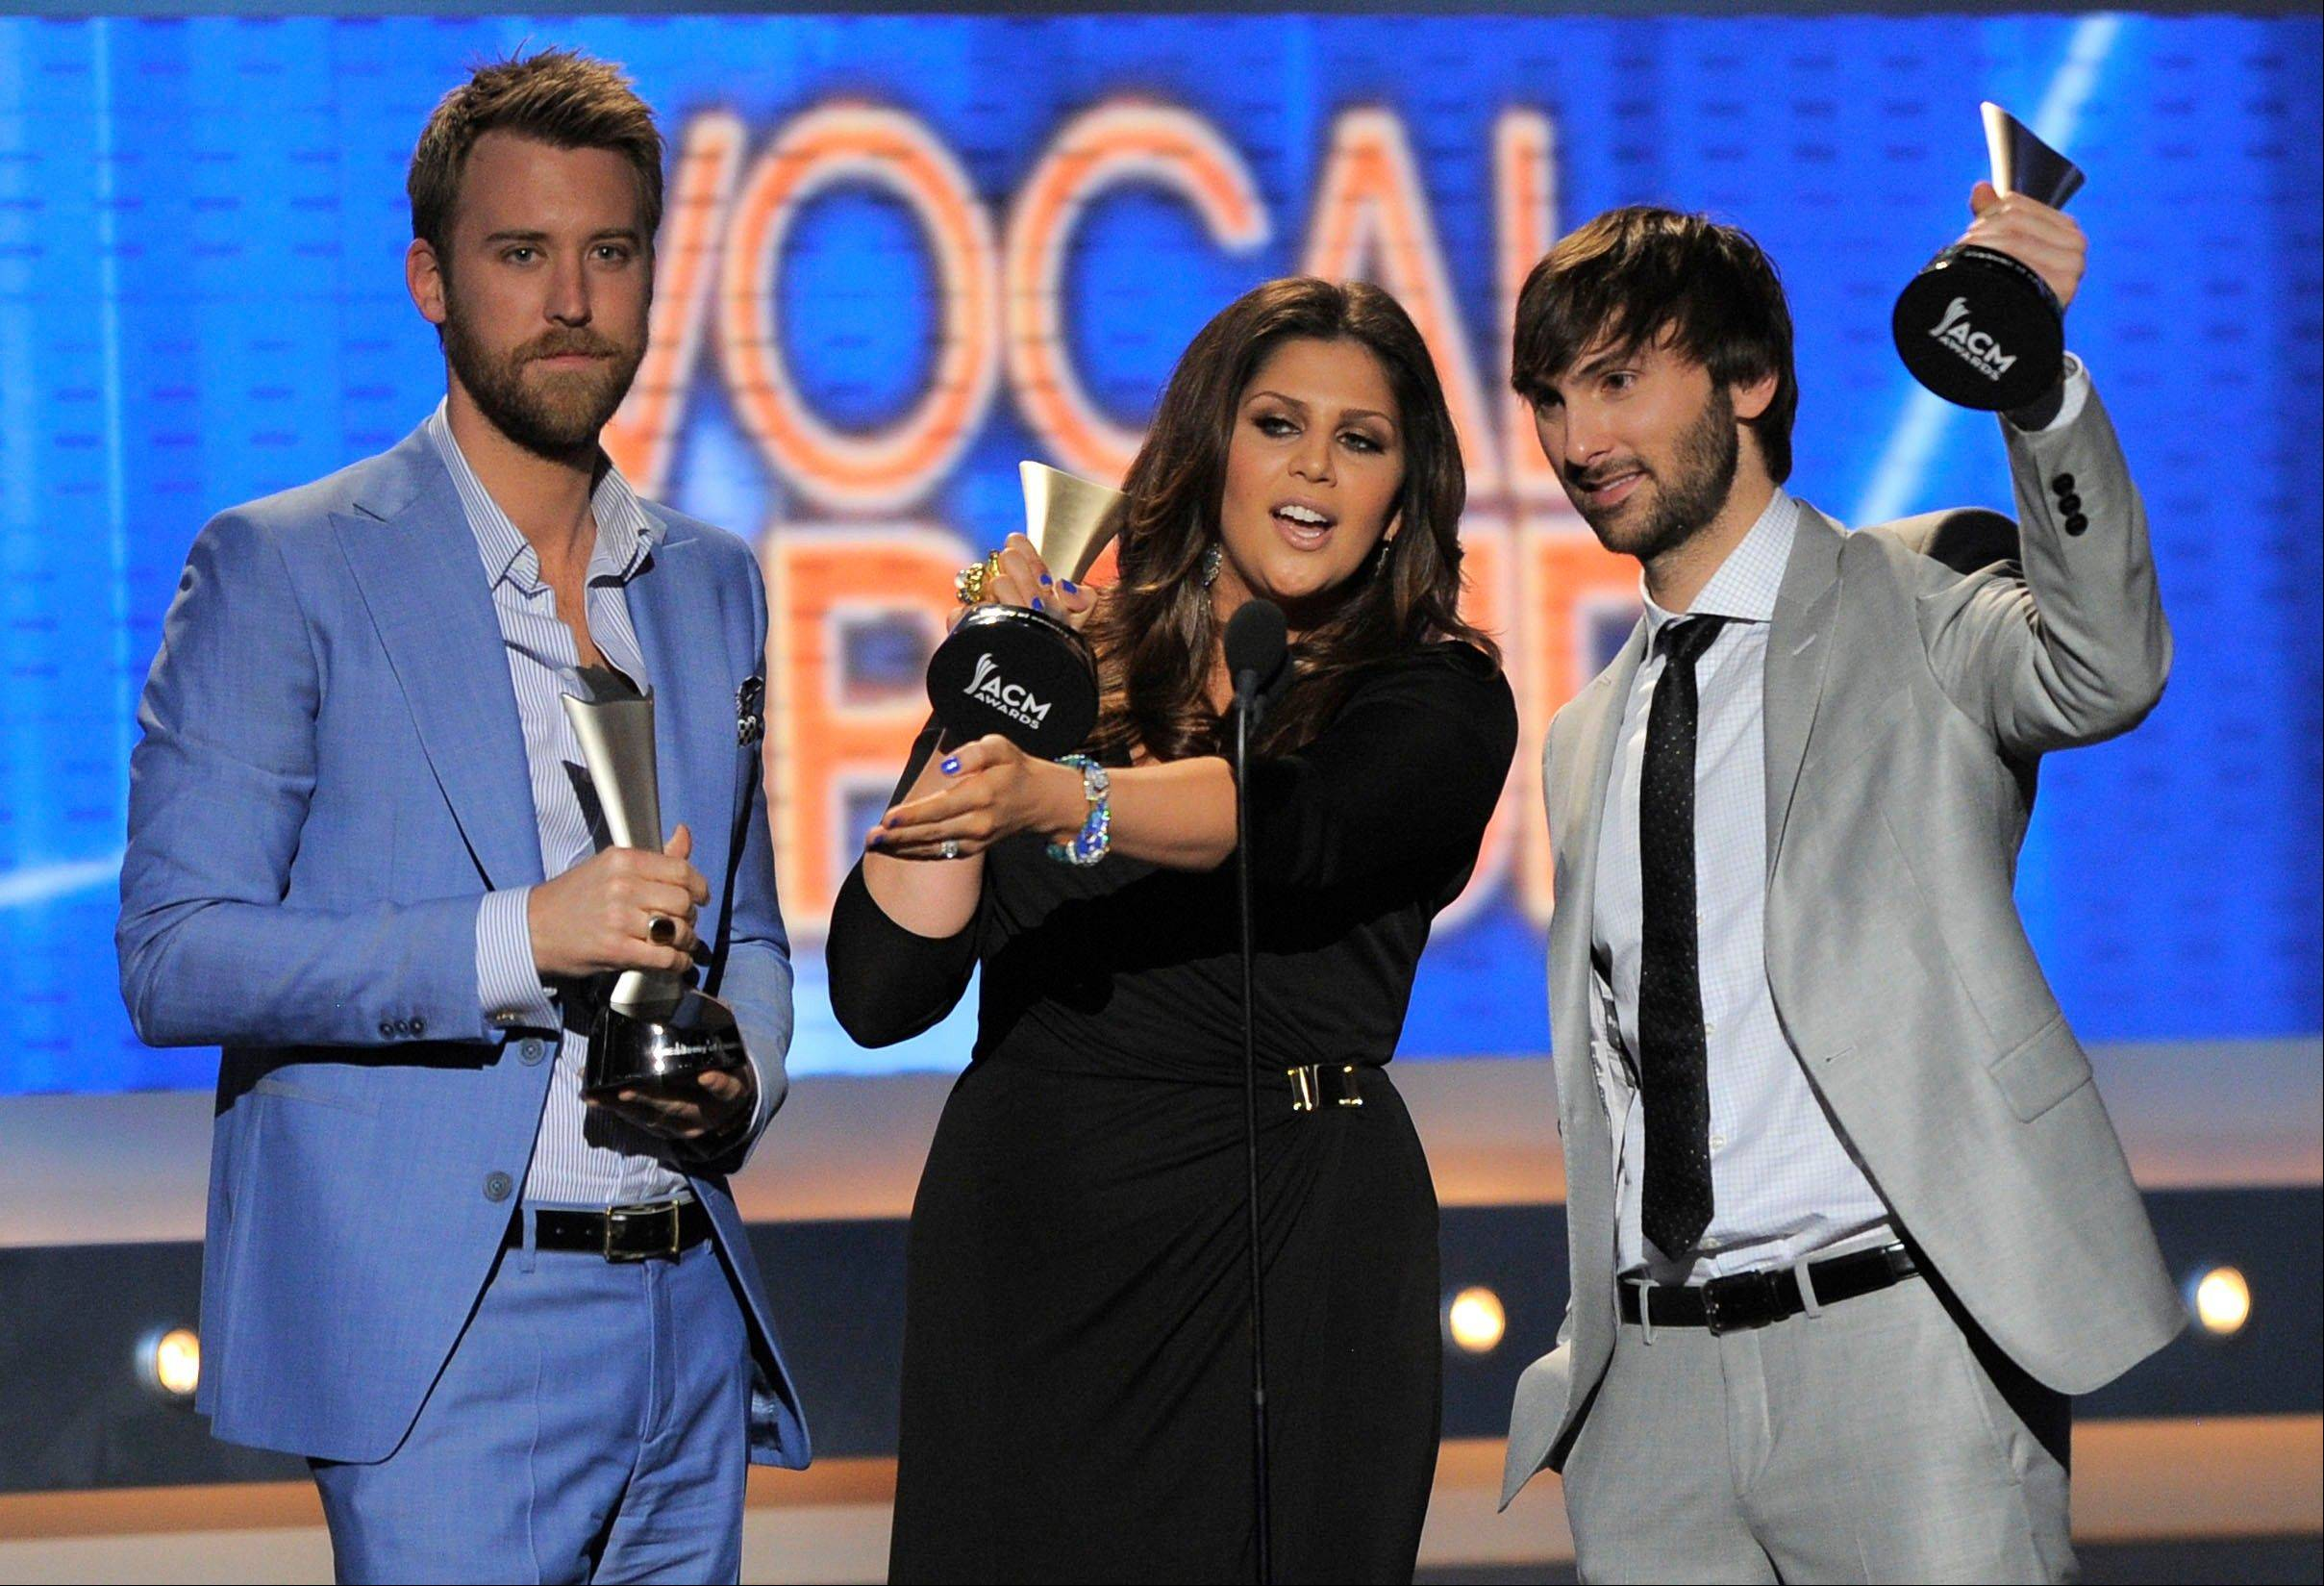 Charles Kelley, left, Hillary Scott and Dave Haywood of Lady Antebellum accept the award for vocal group of the year.